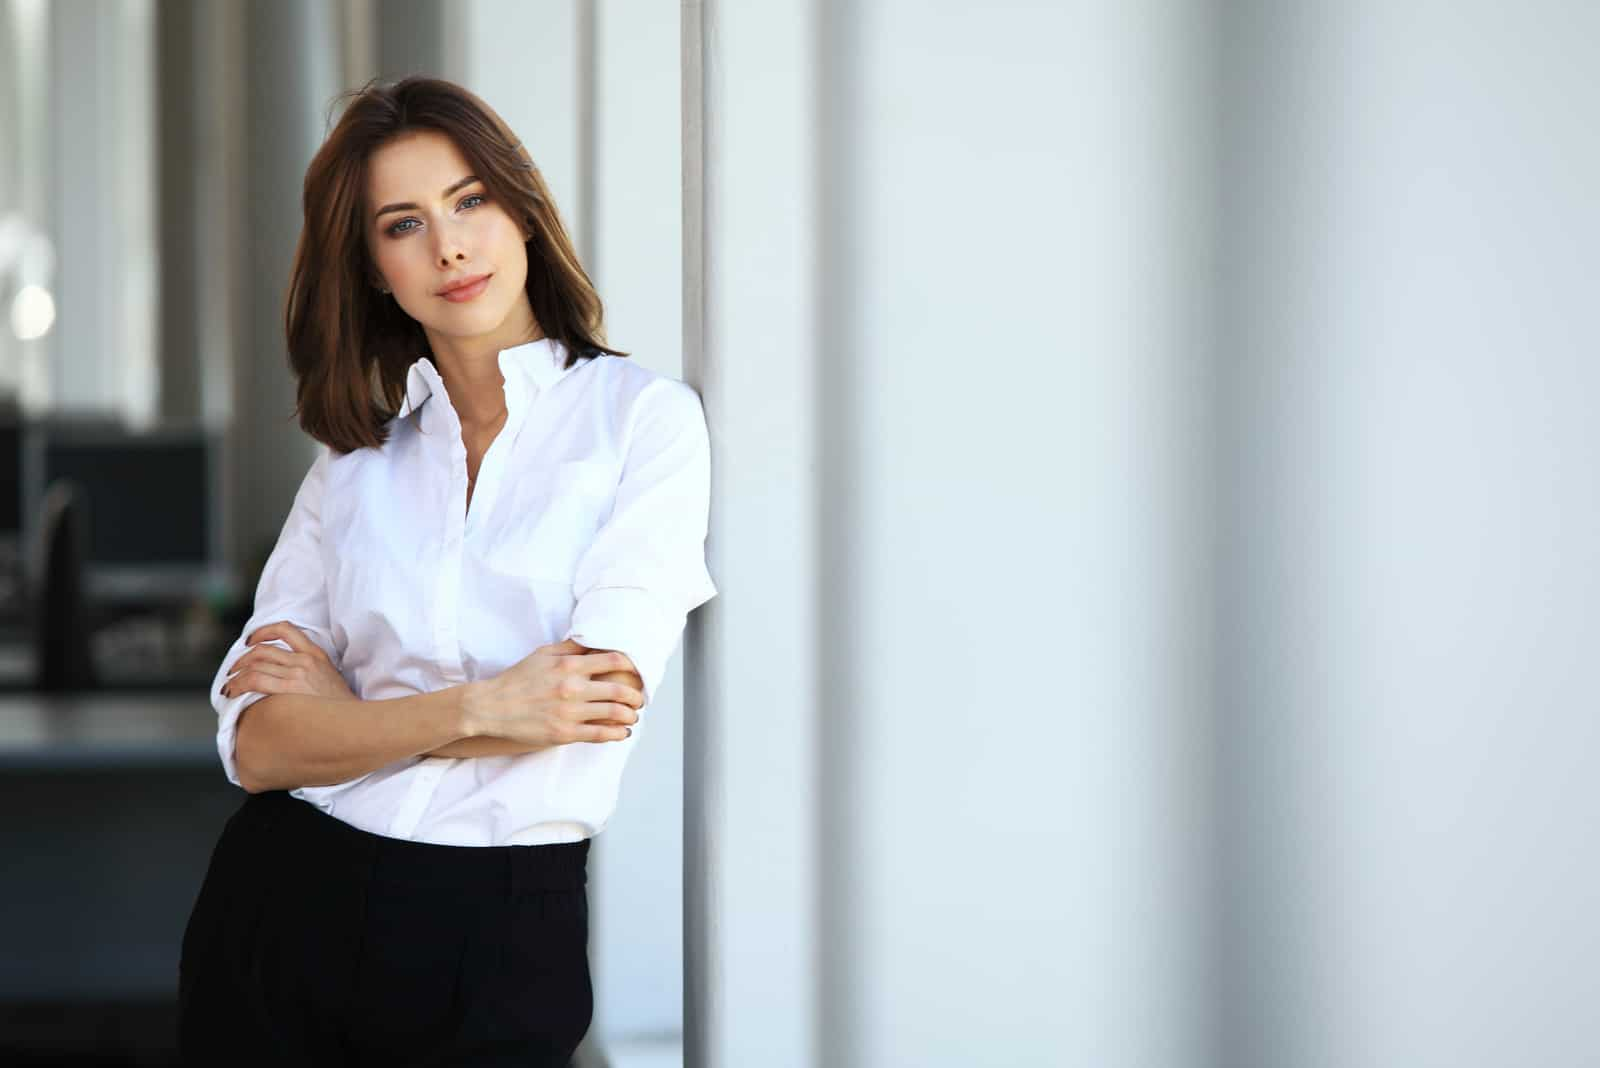 the woman stands leaning against the wall